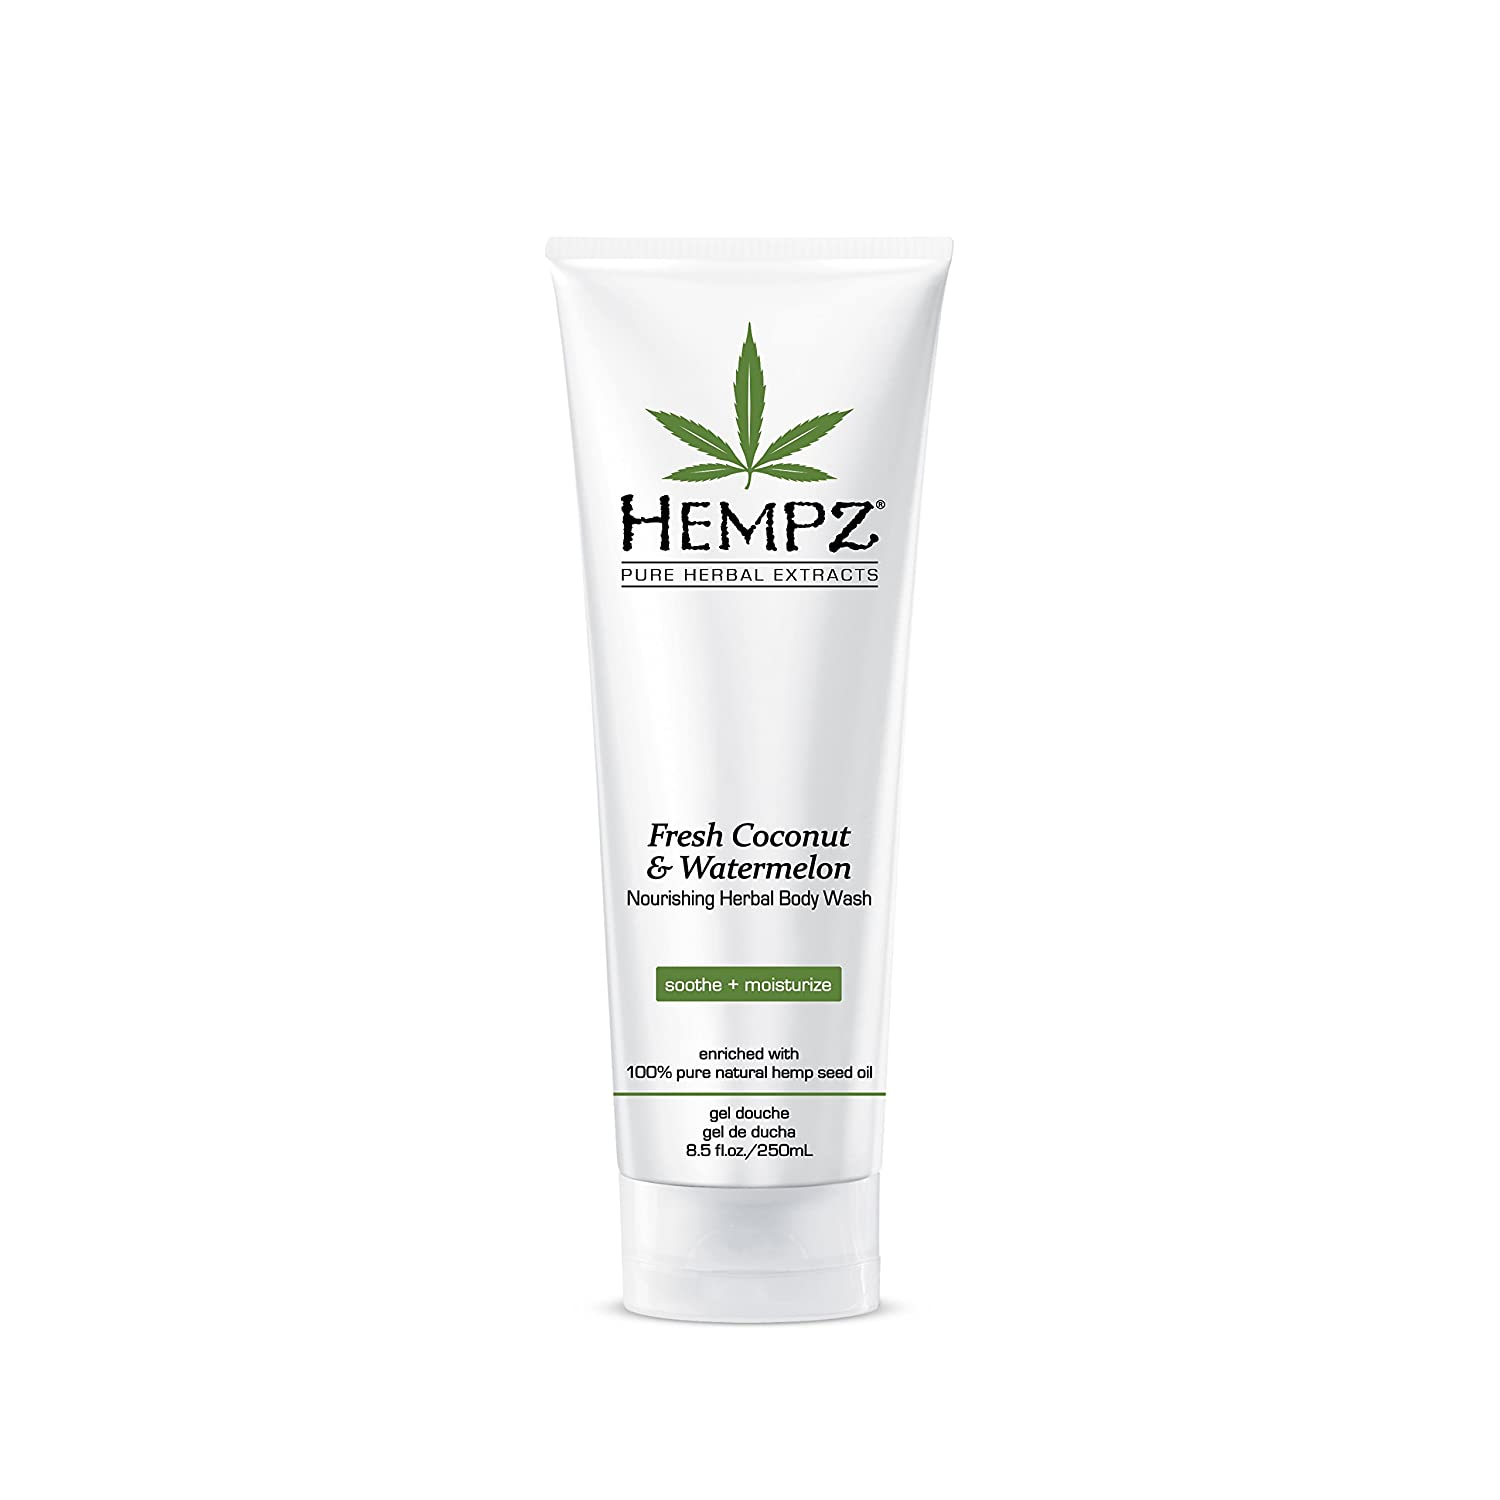 Hempz Fresh Coconut and Watermelon Nourishing Herbal Body Wash, 8.5 oz. - Scented Shower Gel, Bath Soap with Anti-Aging Serum for Youthful Skin - Fragranced Shower Cream with Chamomile - Vegan